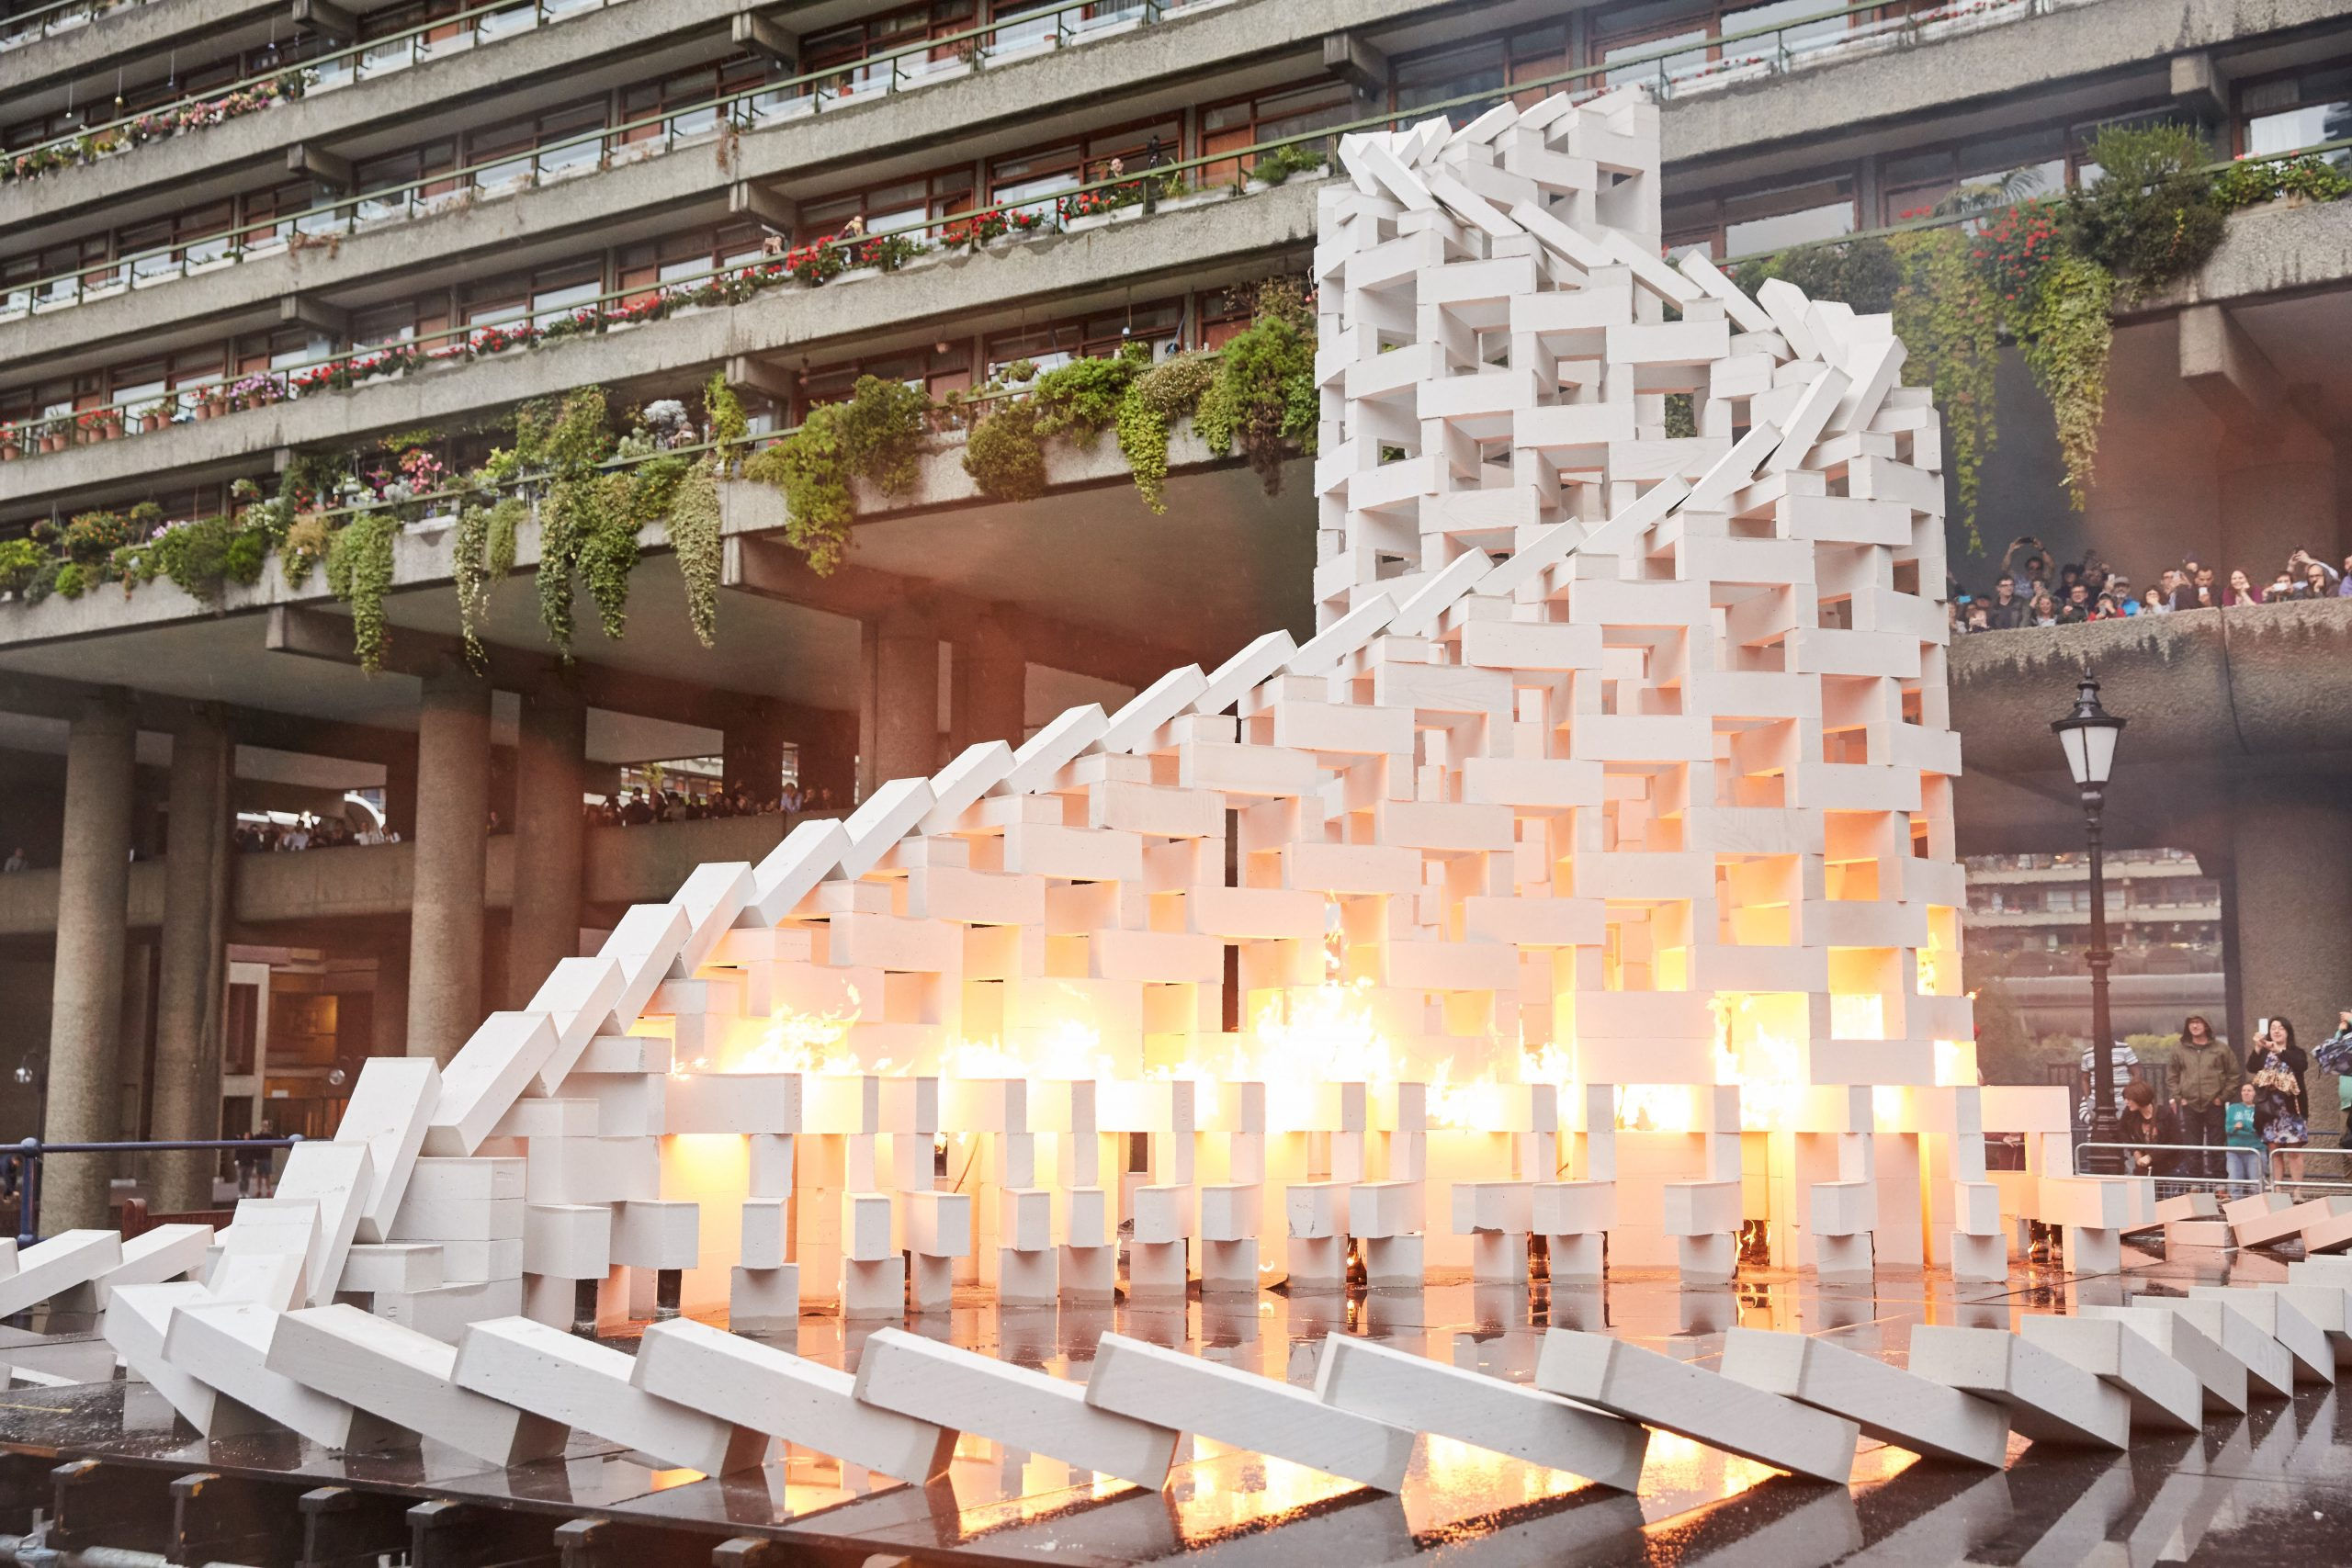 Breezeblocks built into a structure outside of the Barbican